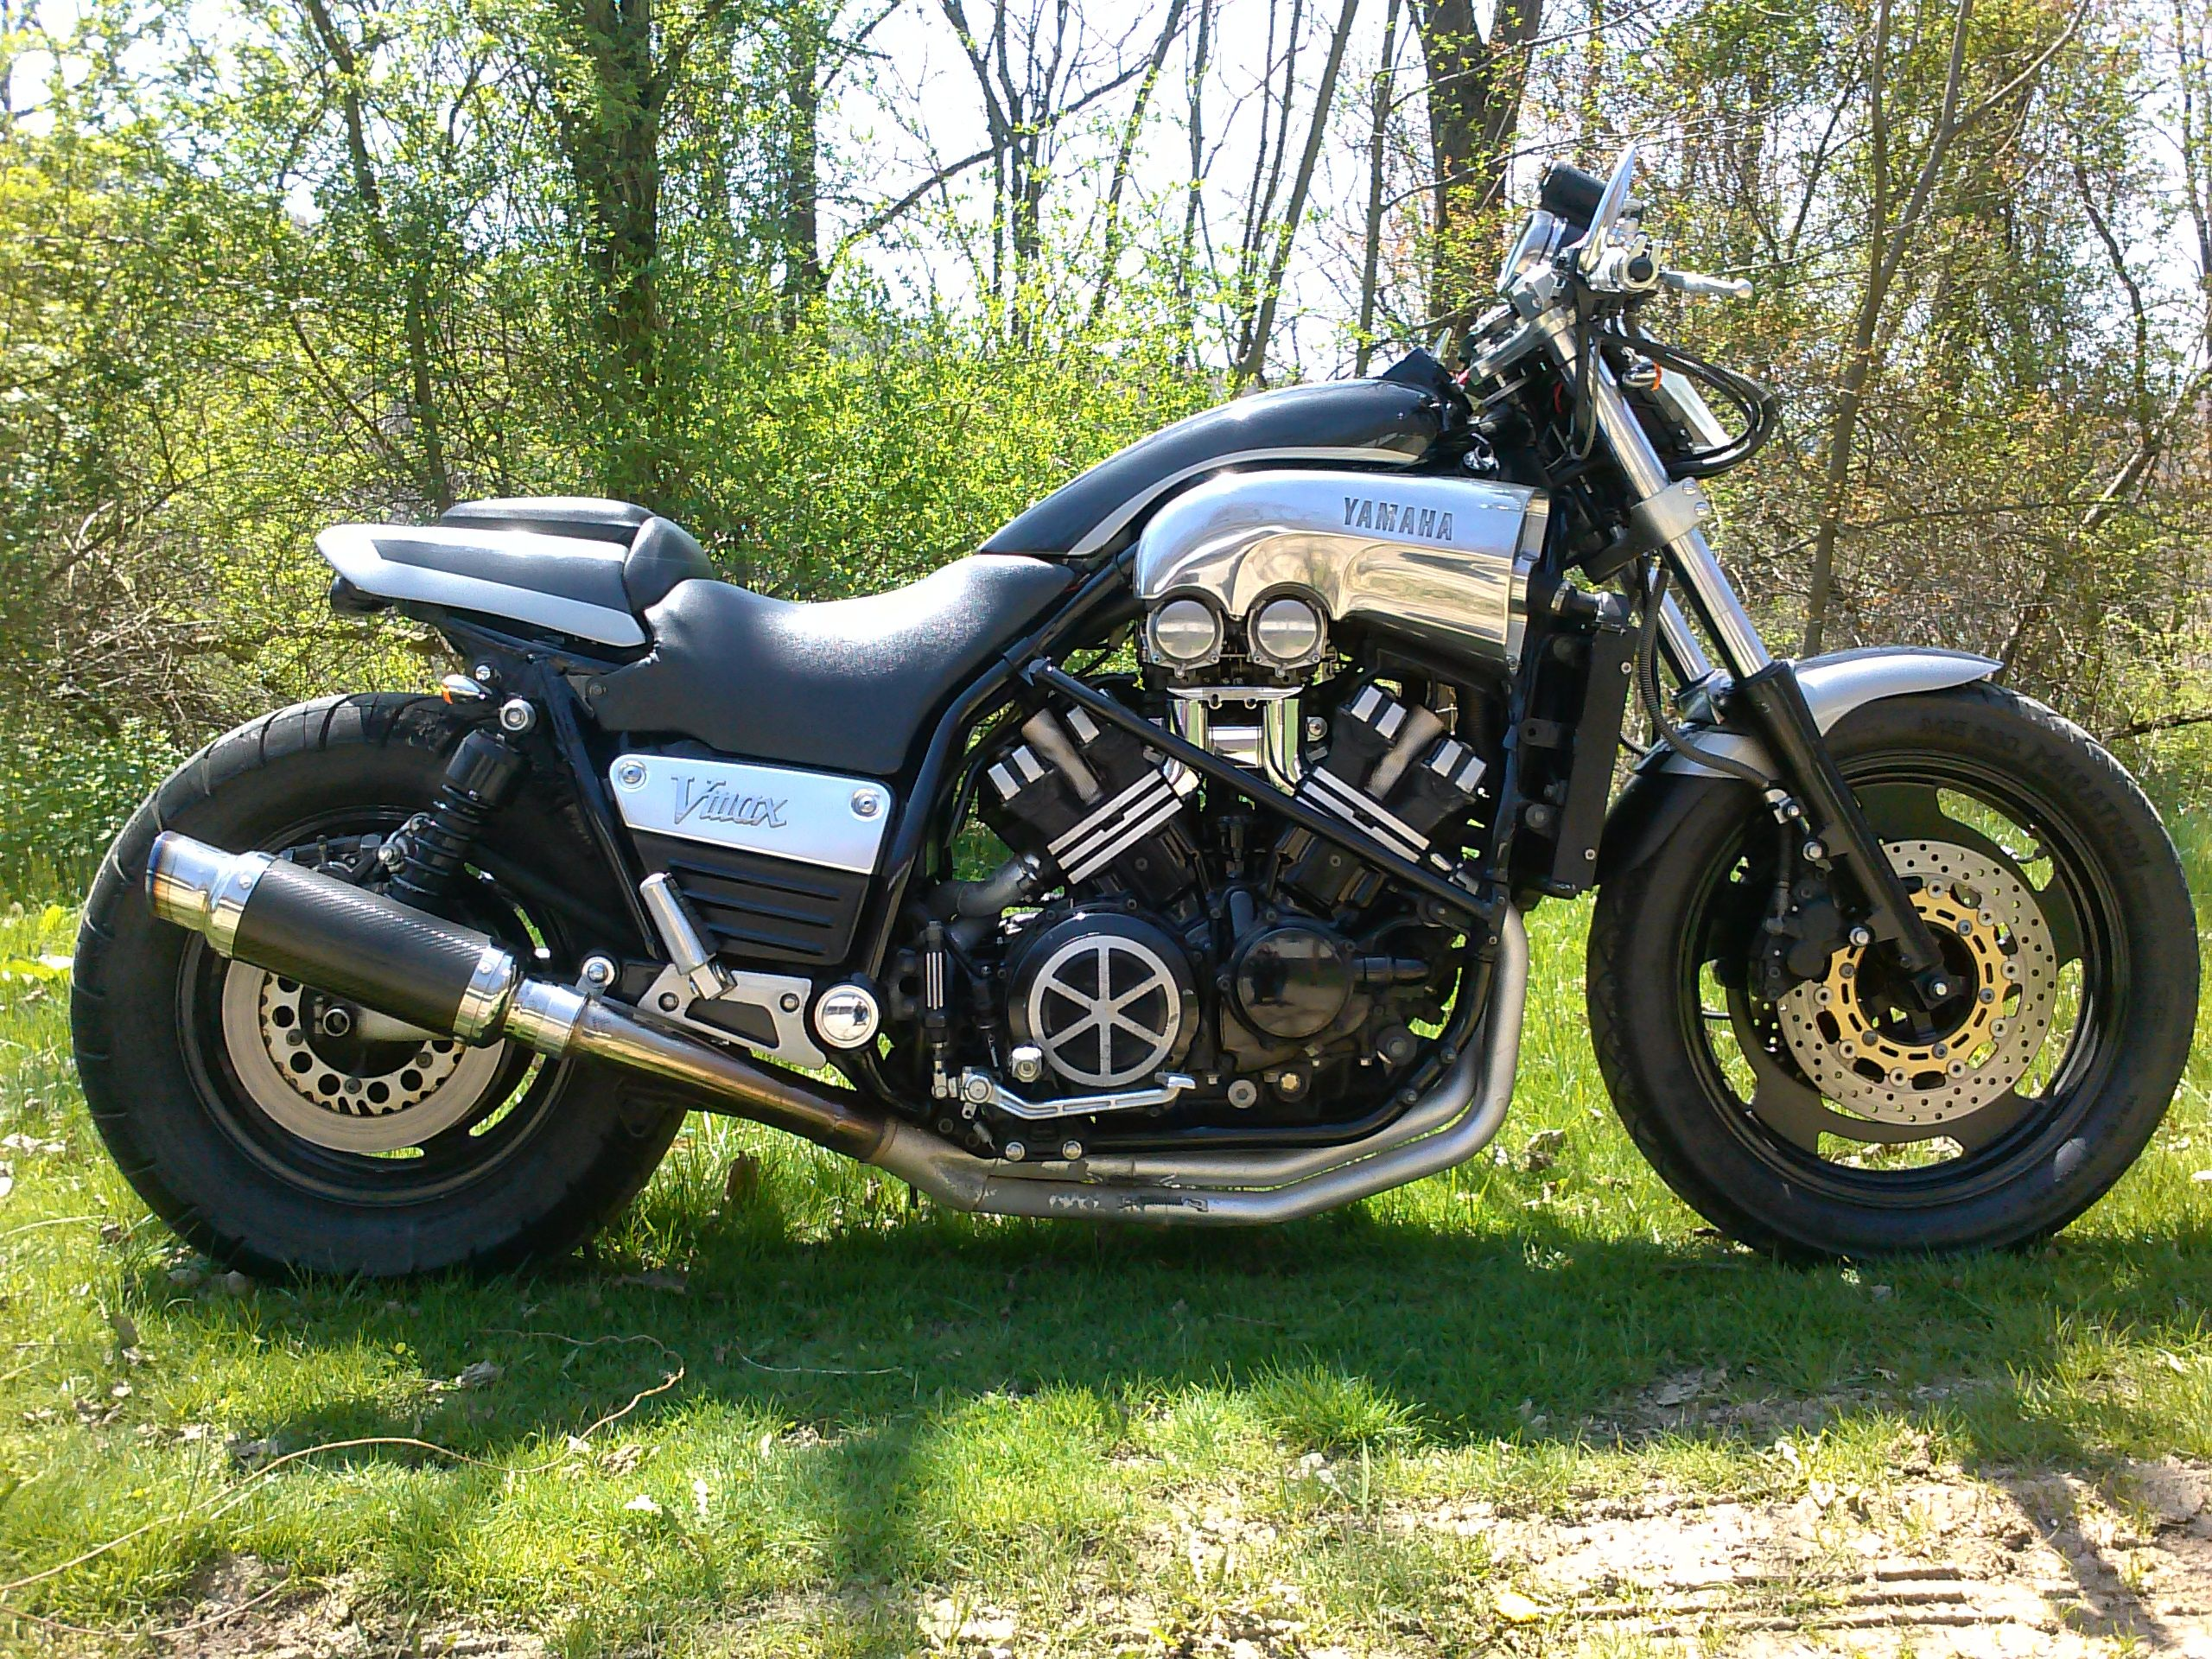 my 1997 custom yamaha v max streetfighter handmade custom parts made by me 1200cc v 4 120 hp. Black Bedroom Furniture Sets. Home Design Ideas